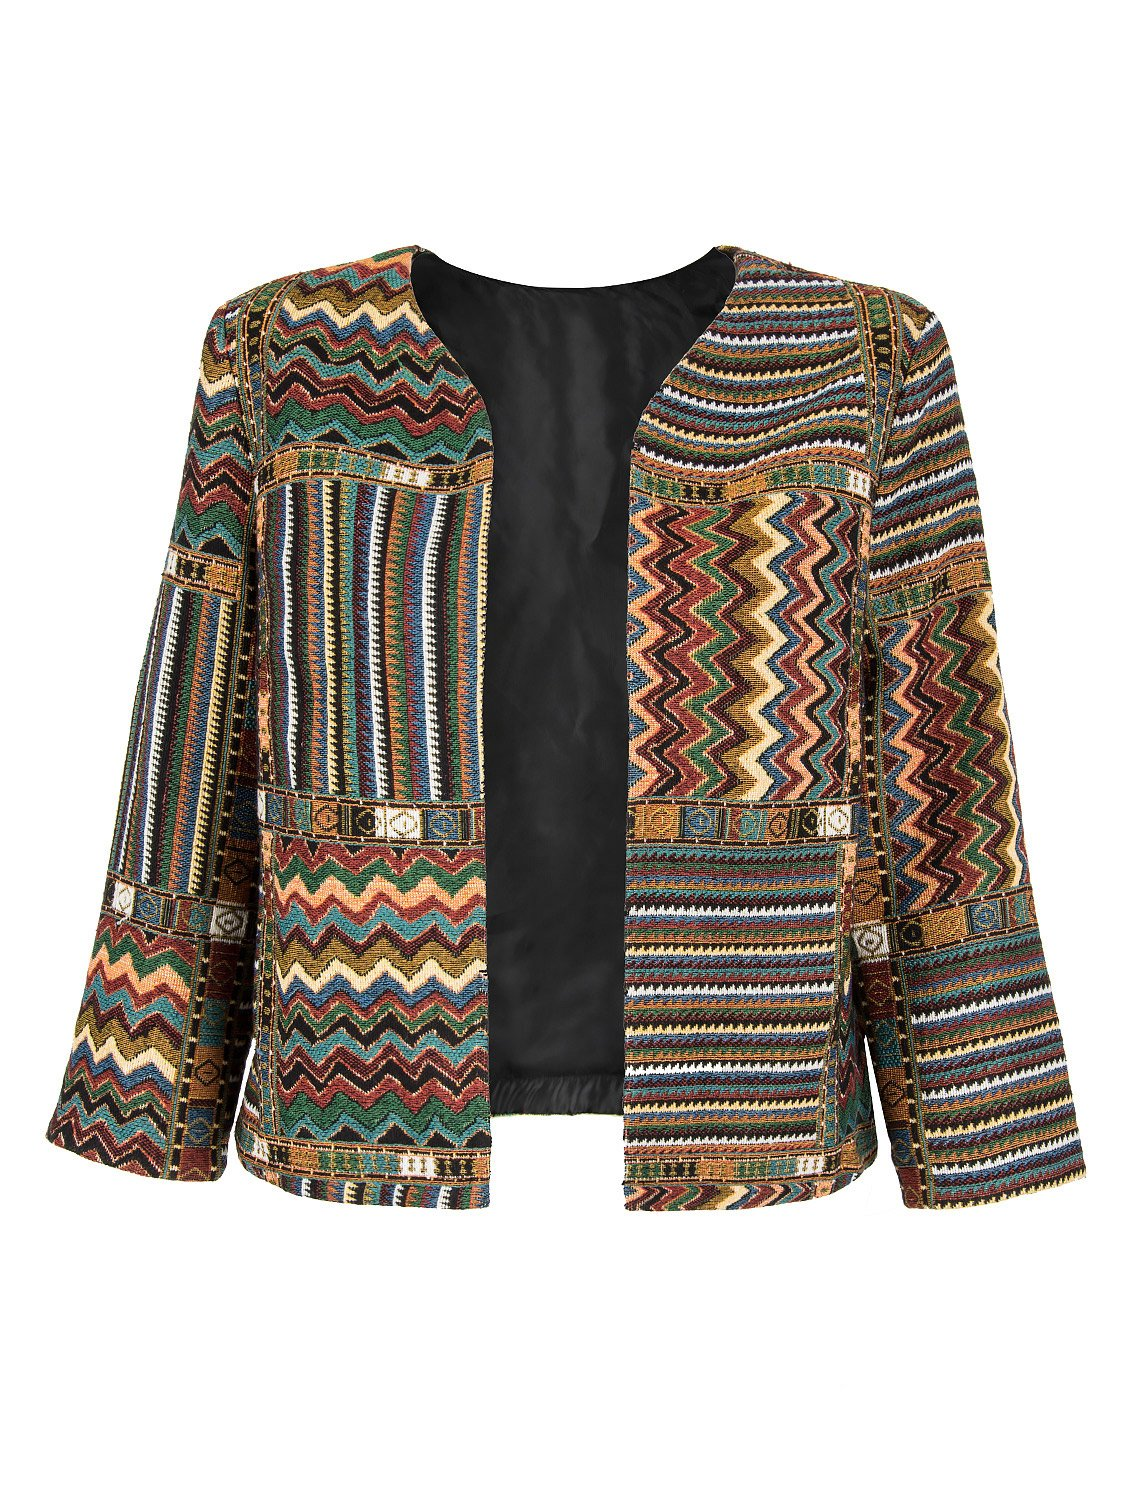 CHOiES record your inspired fashion Choies Women Geo-Tribal Ethnic Print 3/4 Sleeve Cardigan Jacket Retro Printed Coat L